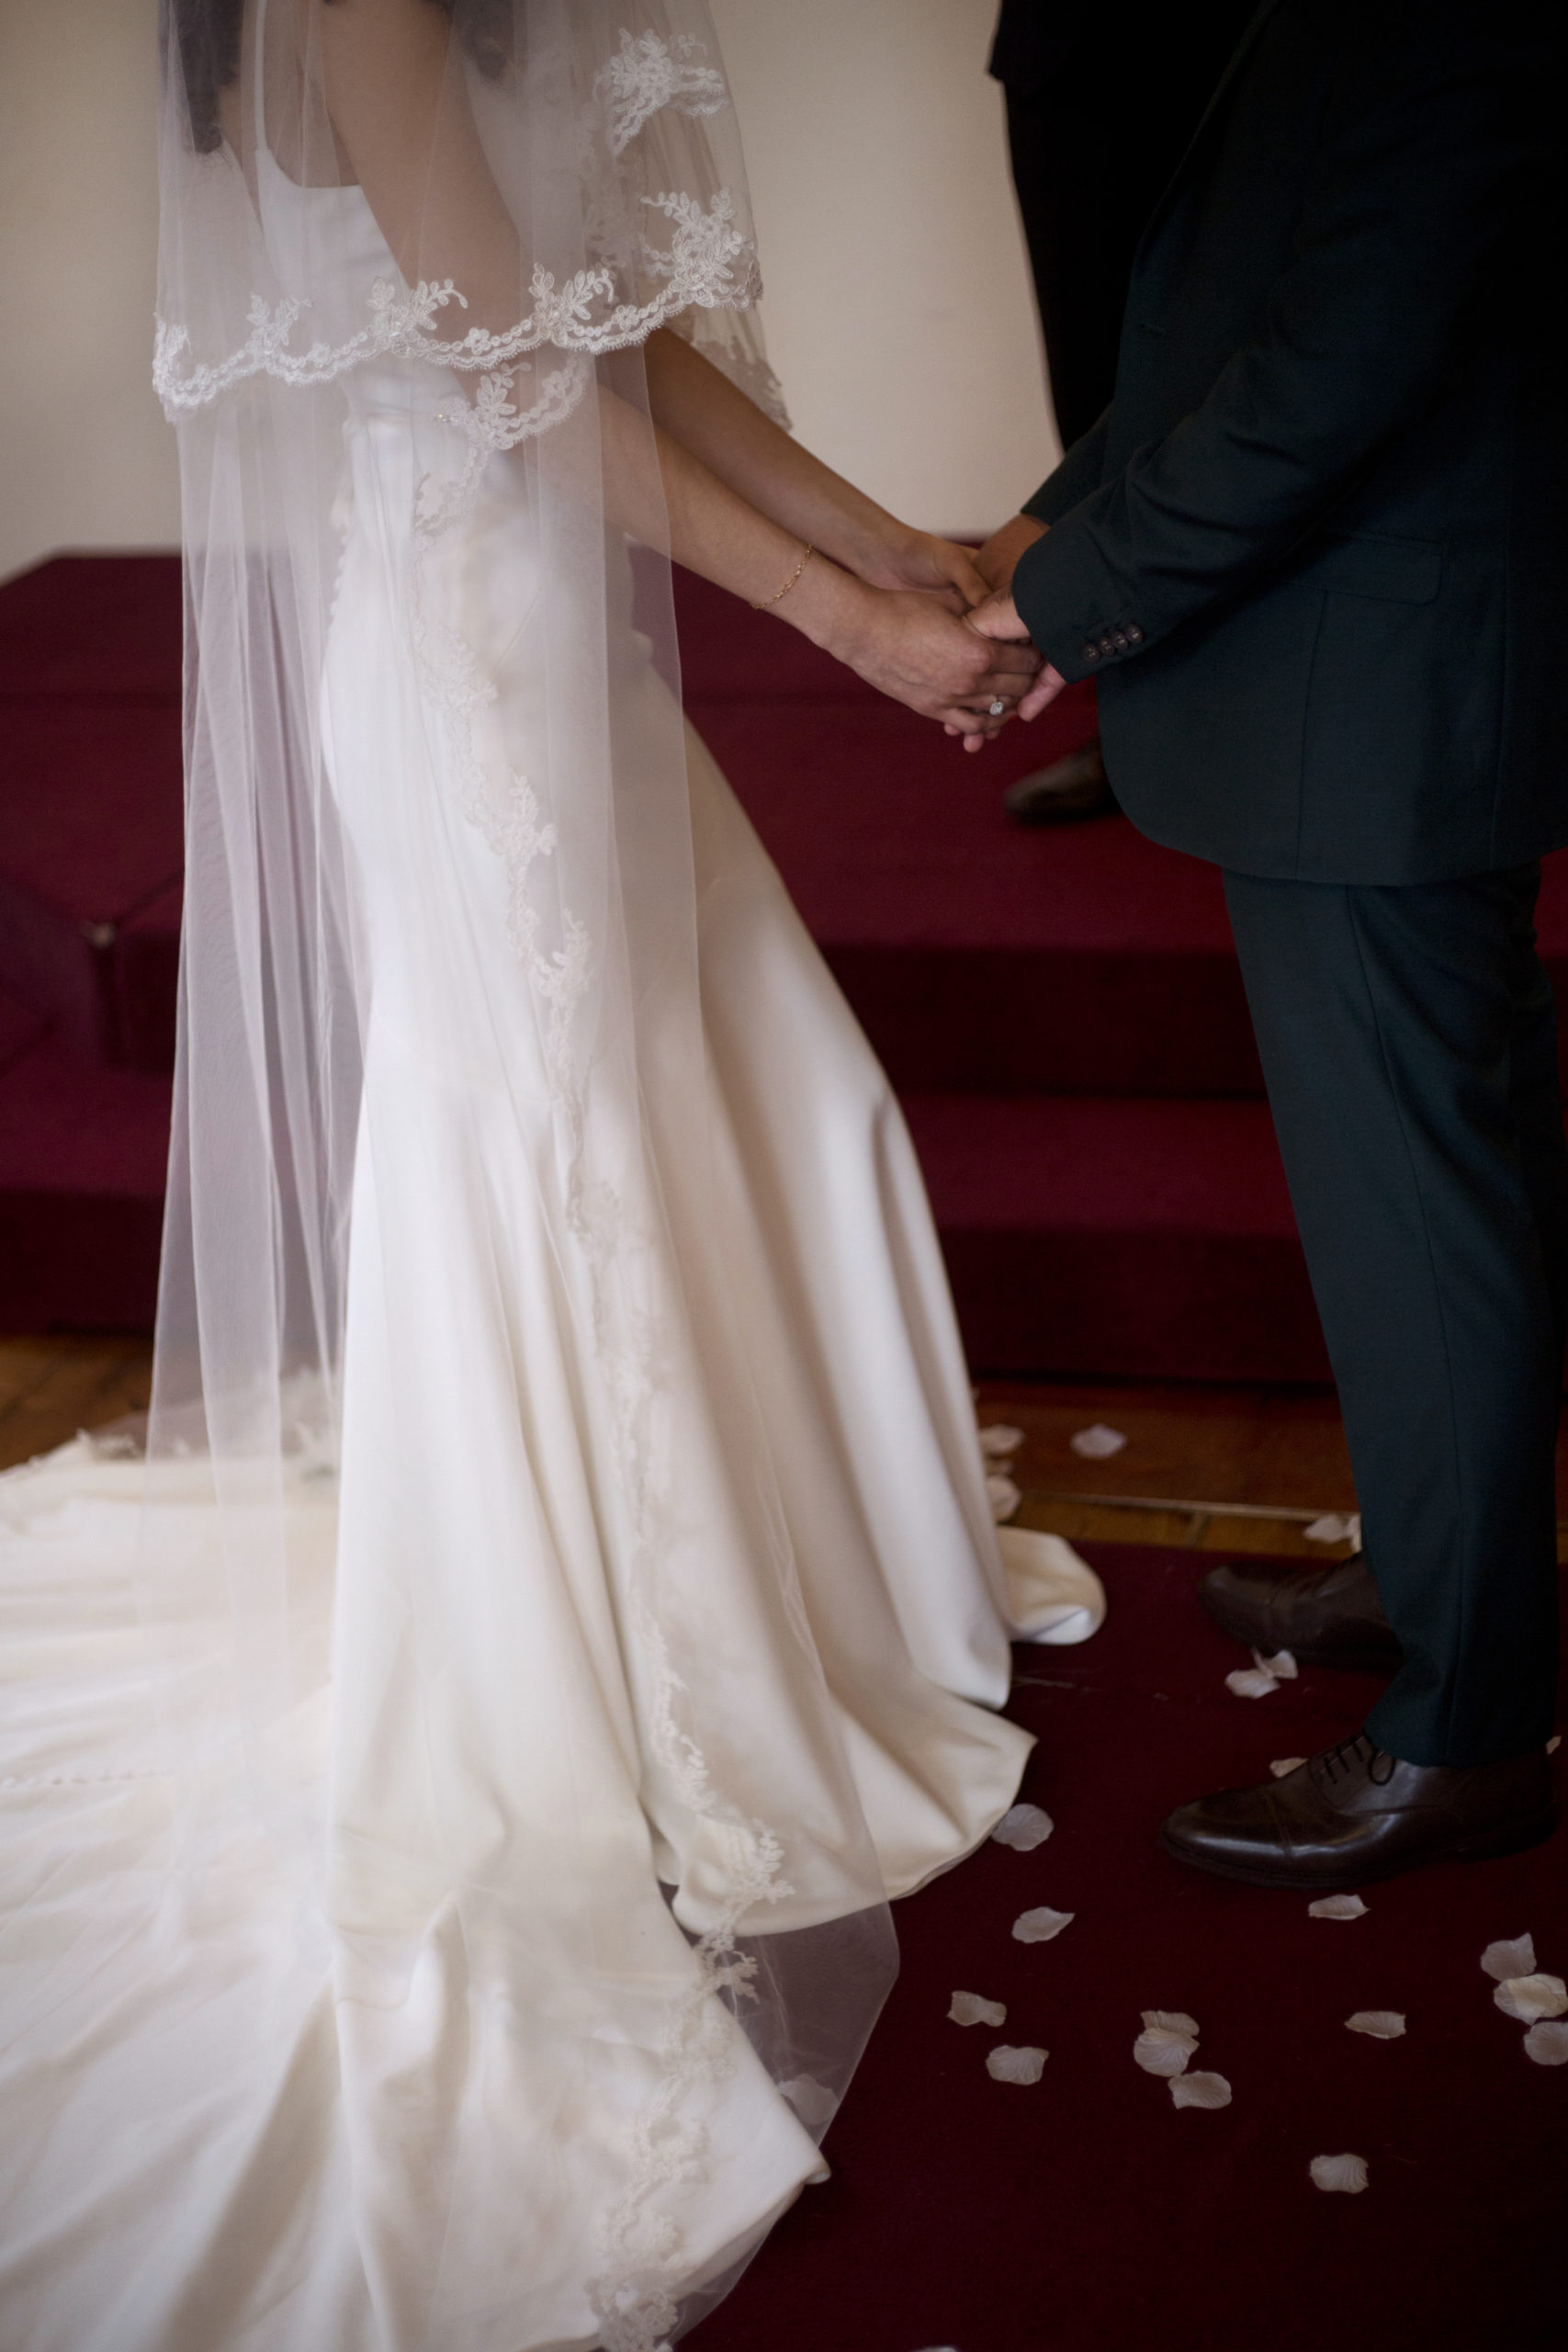 Bride and Groom hold hands in church micro wedding photographer Bristol